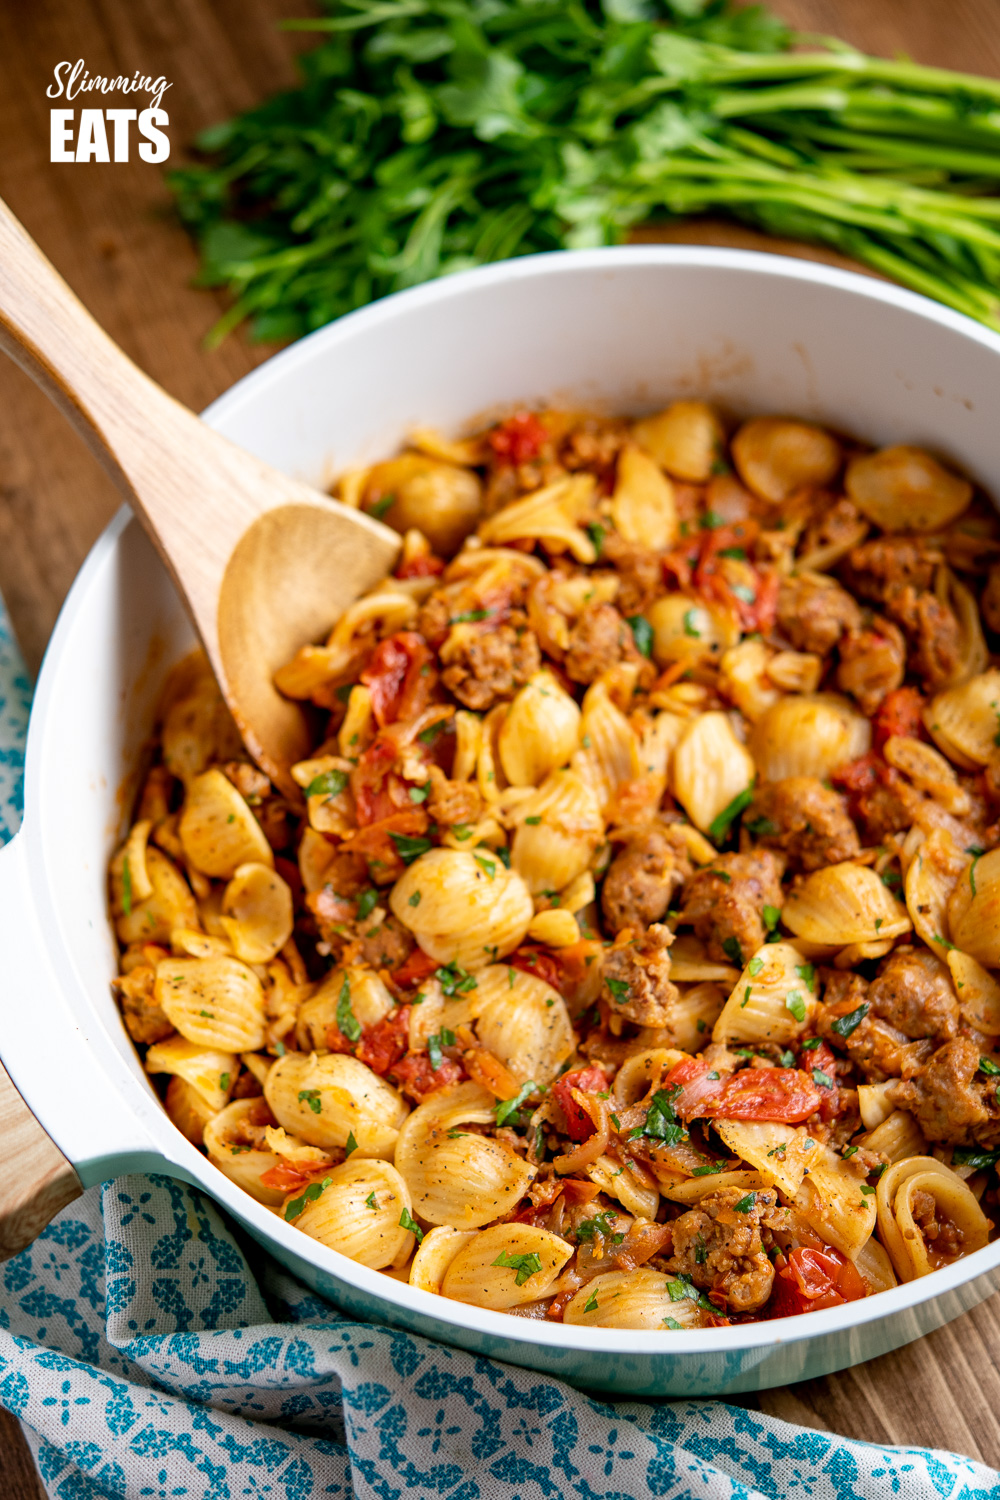 Sausage, Balsamic Tomatoes and Onion with Orecchiette in casserole pan with wooden spoon